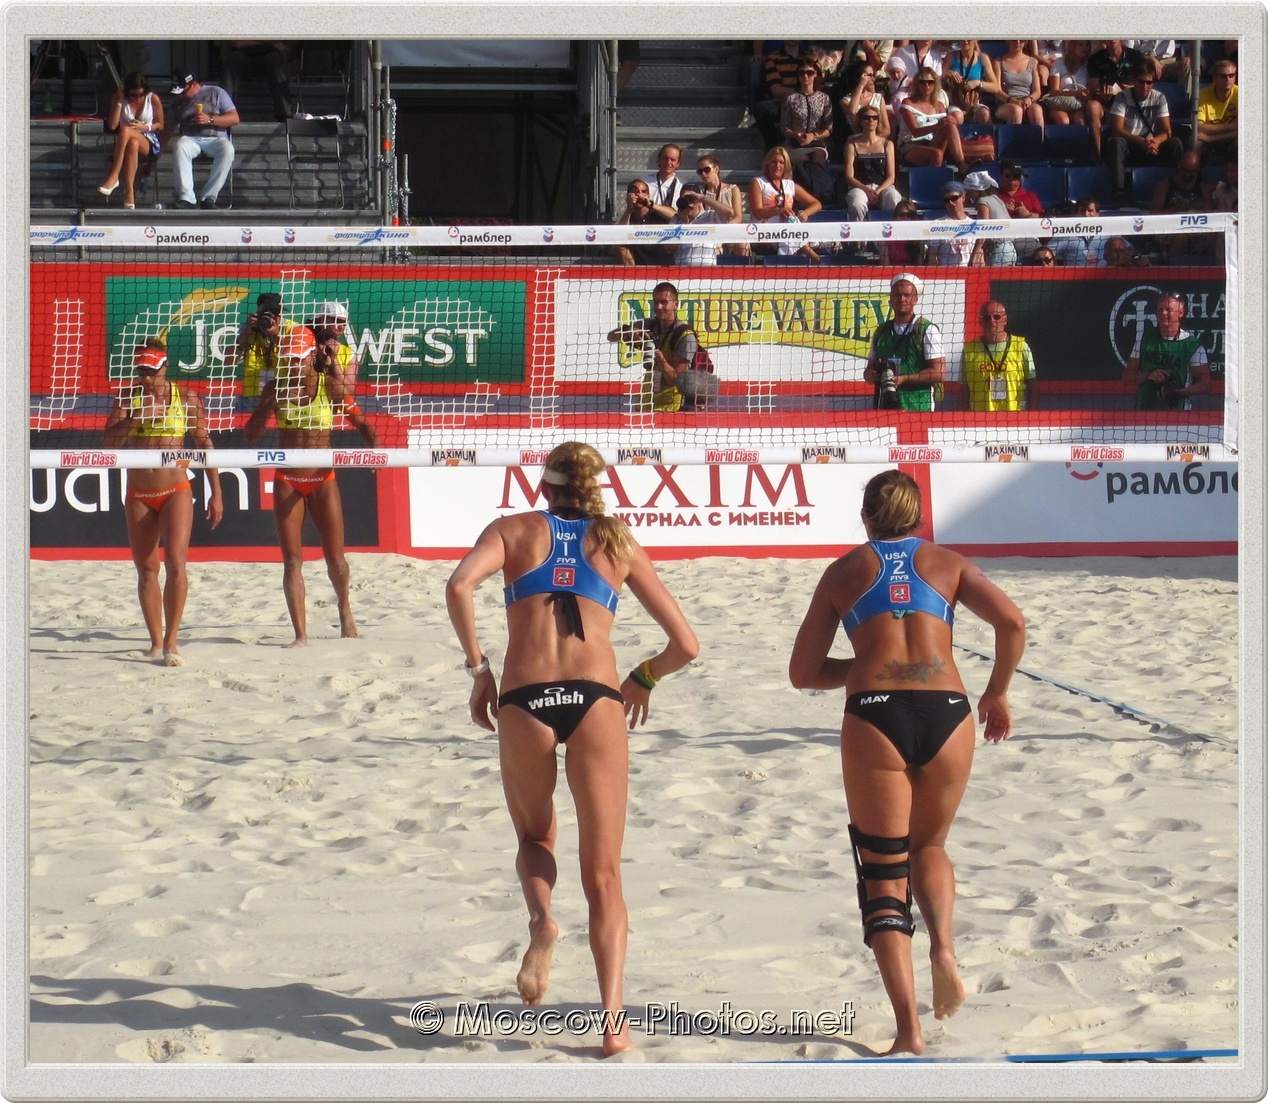 Kerri Walsh &  Misty May-Treanor:  Ready To Play!